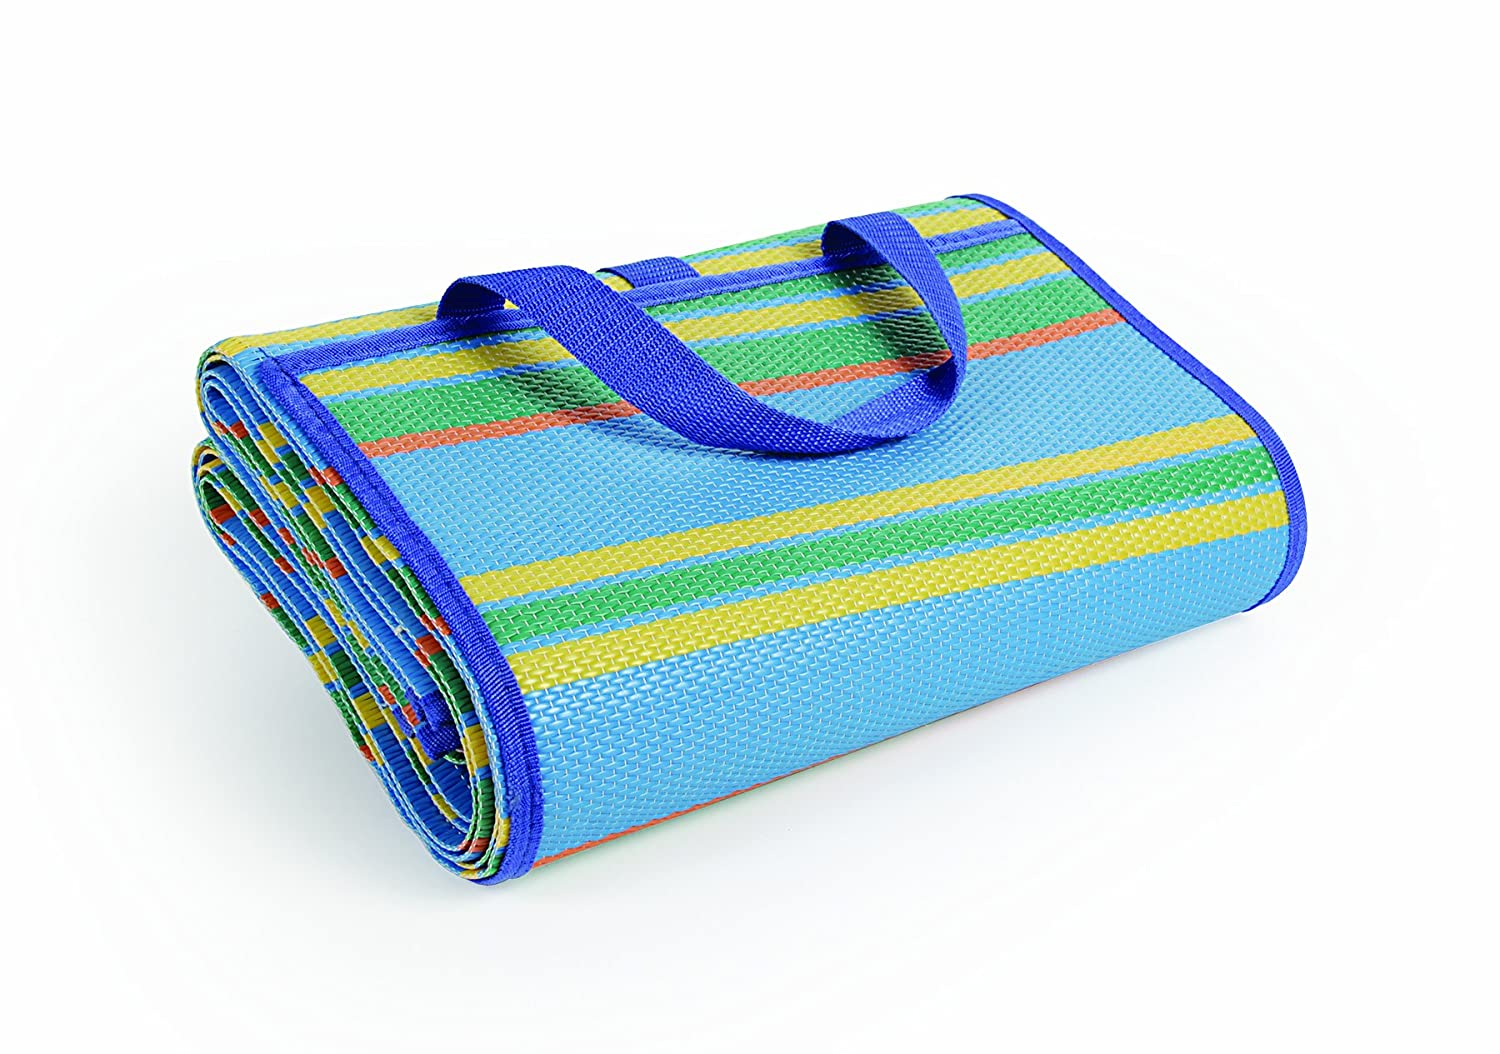 The Best Picnic Blanket Reviews 4